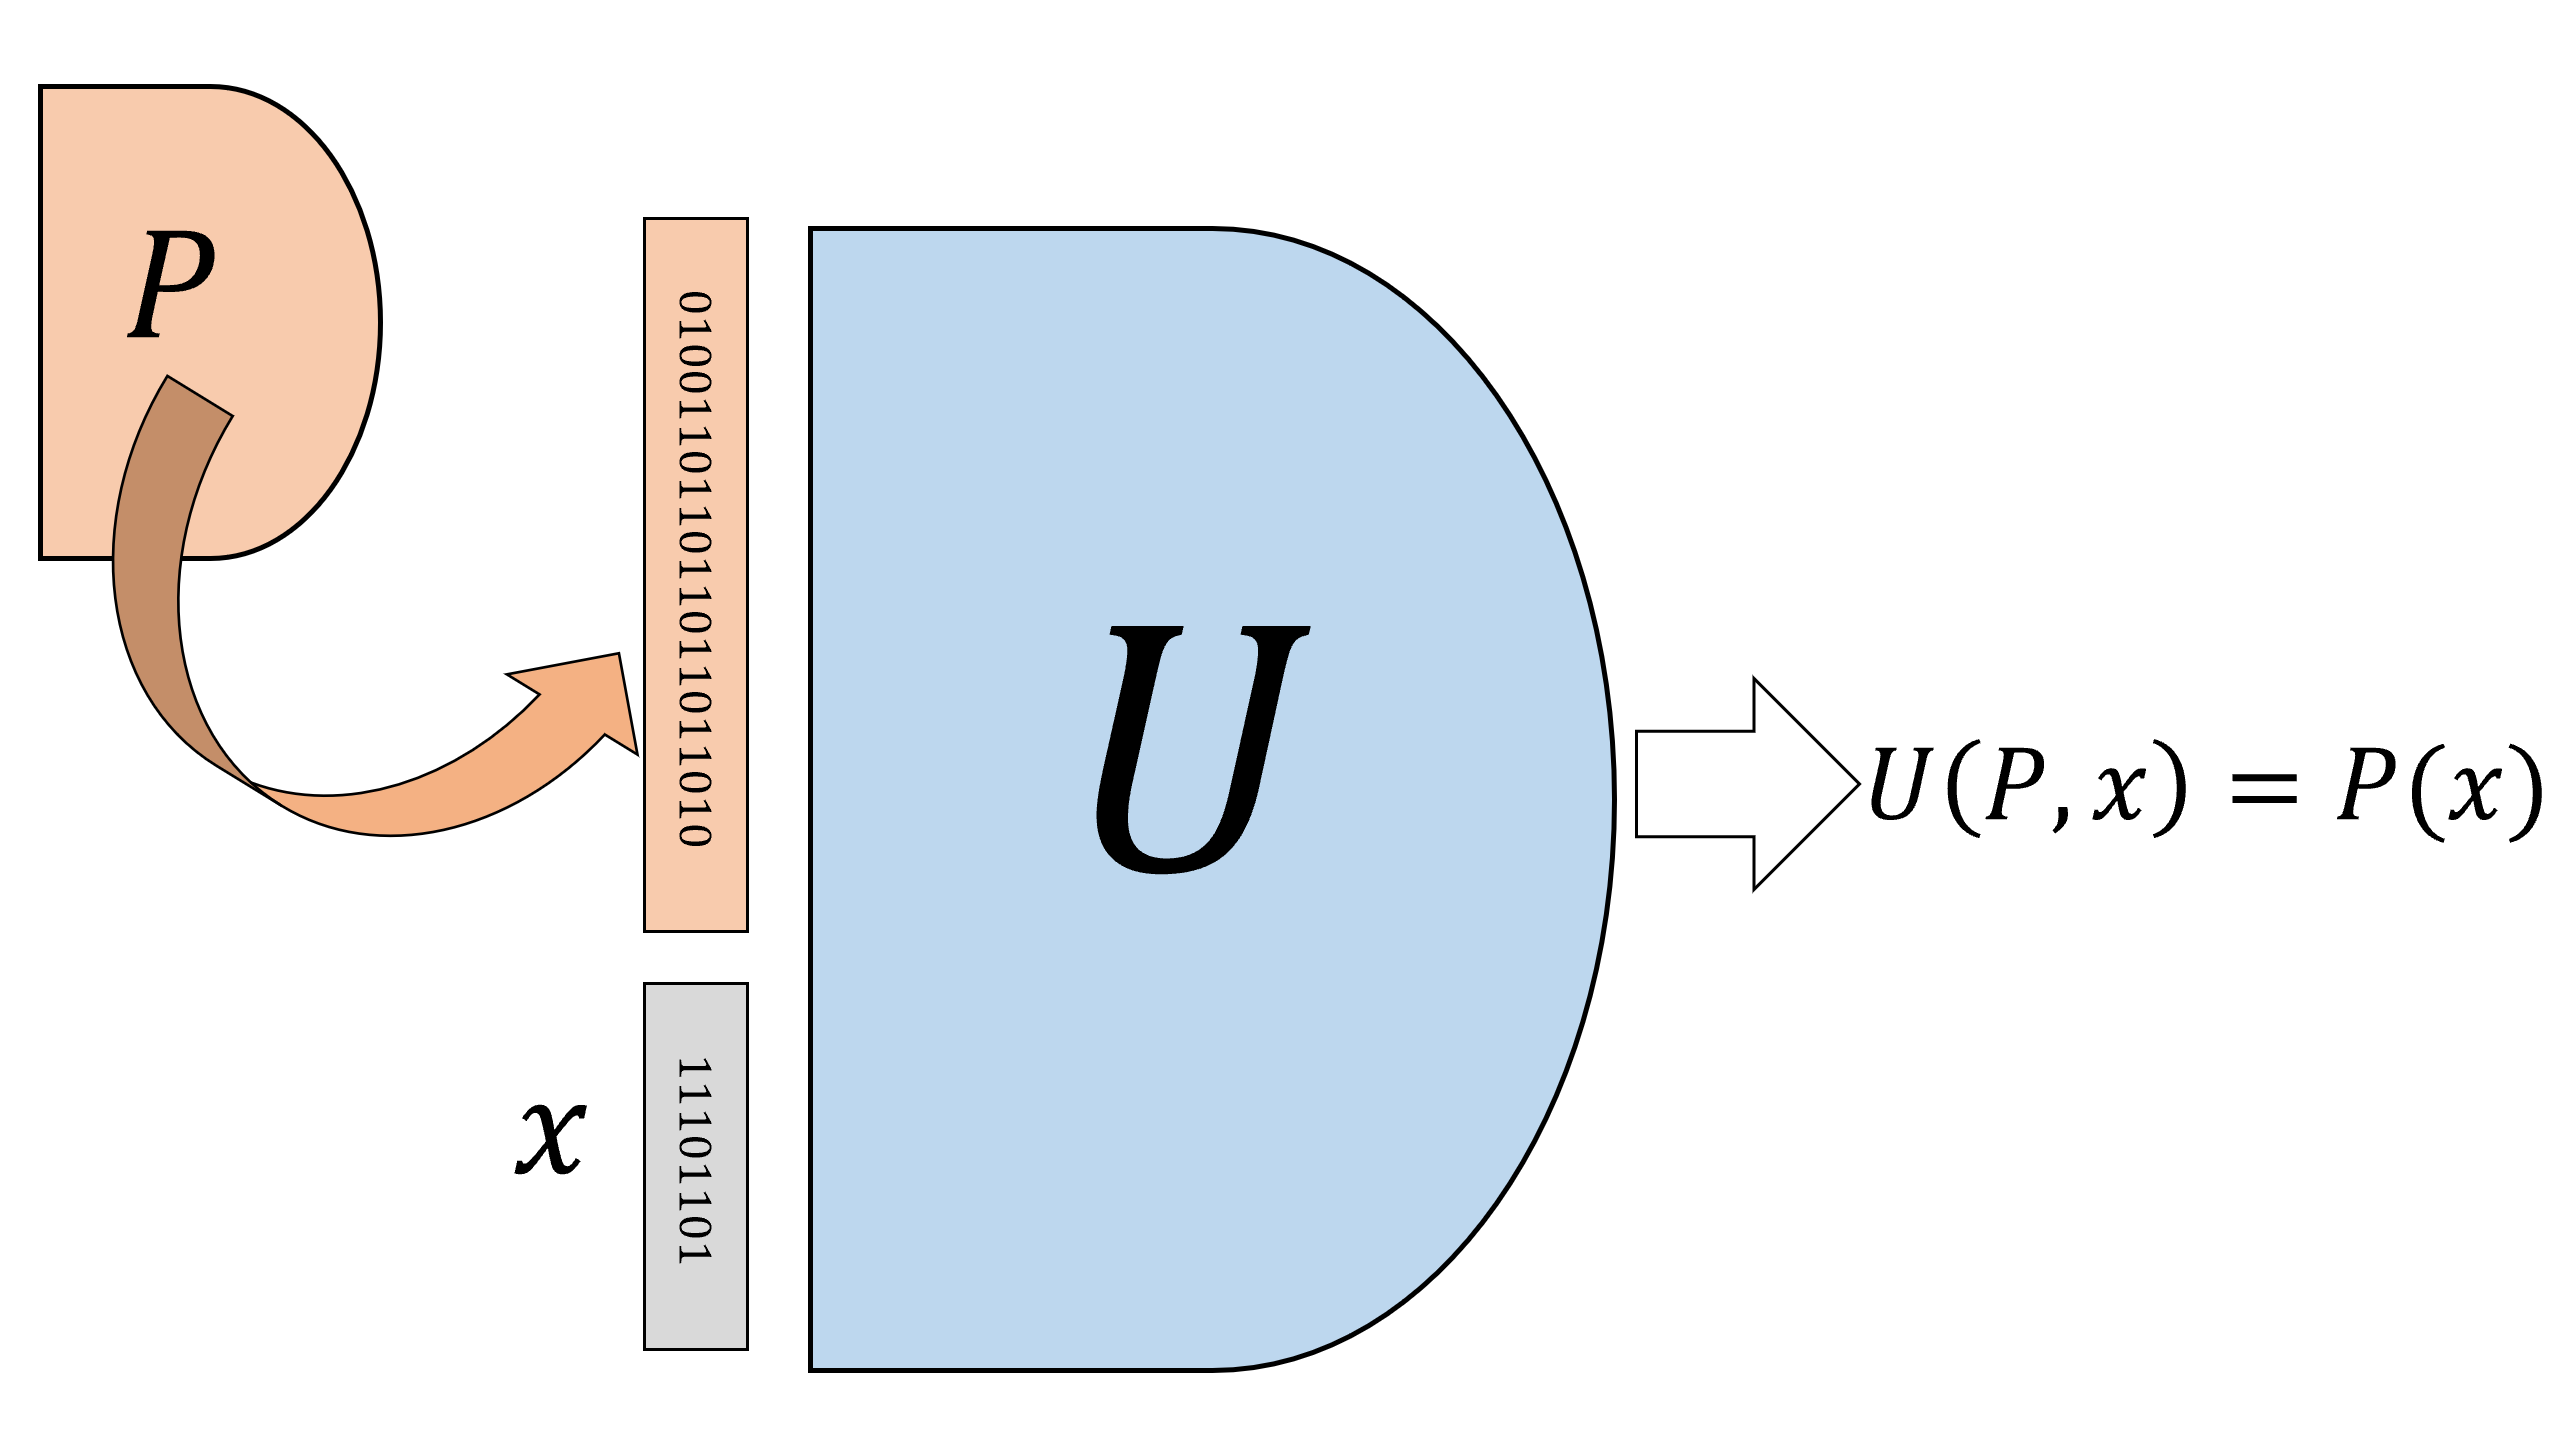 A universal circuit U is a circuit that gets as input the description of an arbitrary (smaller) circuit C as a binary string, and an input x, and outputs the string C(x) which is the evaluation of C on x. We can also think of U as a straight-line program that gets as input the code of a straight-line program C and an input x, and outputs C(x).